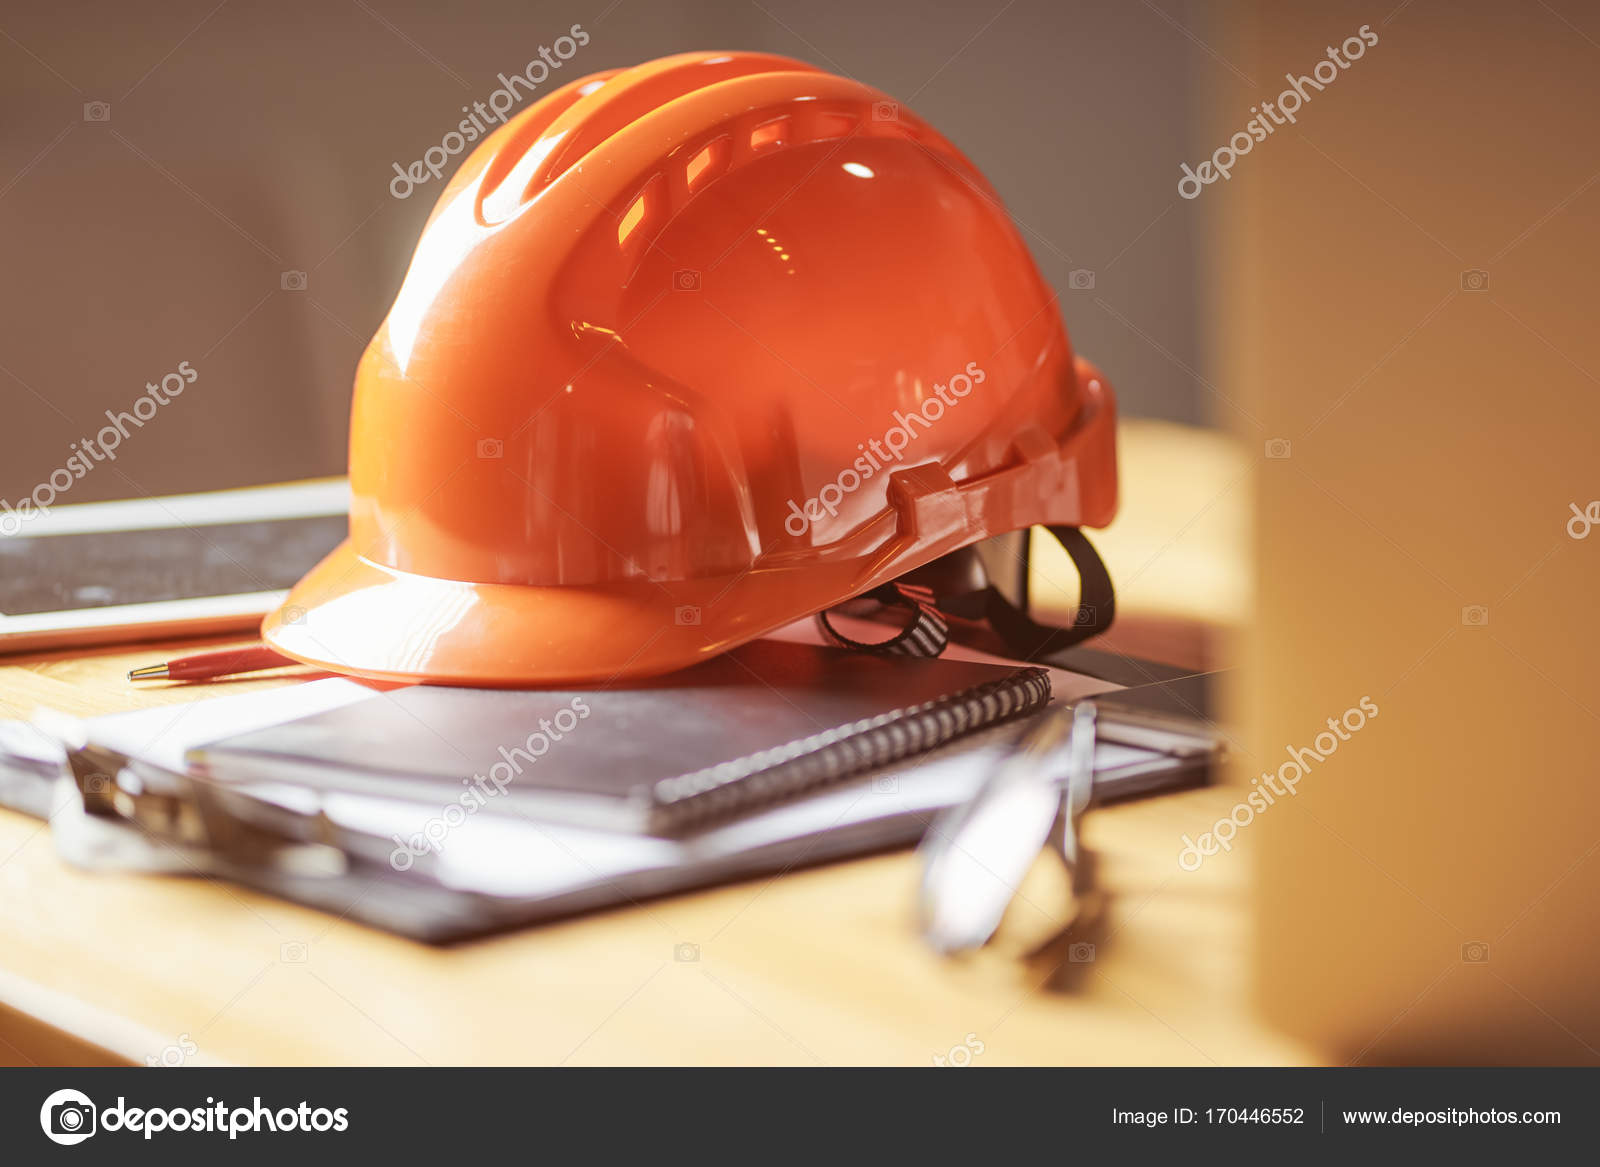 Laptop glasses note book phone blueprint orange safety helmet laptop glasses note book phone blueprint and orange safety helmet stacking on table at construction site for engineer foreman and worker selective malvernweather Gallery